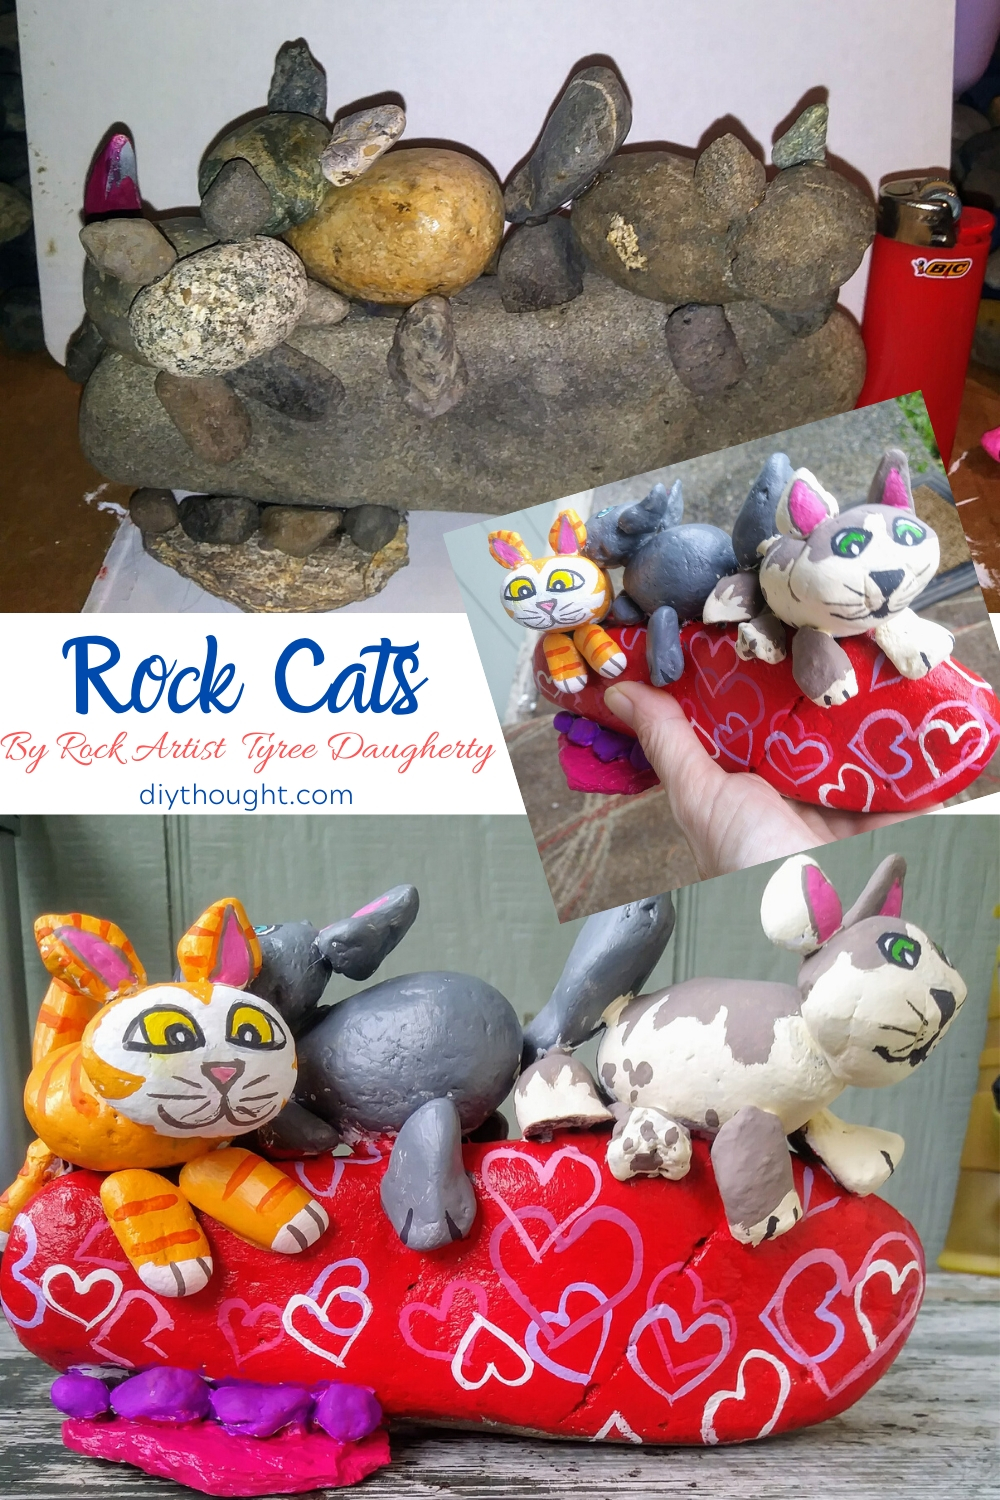 painted rocks cats